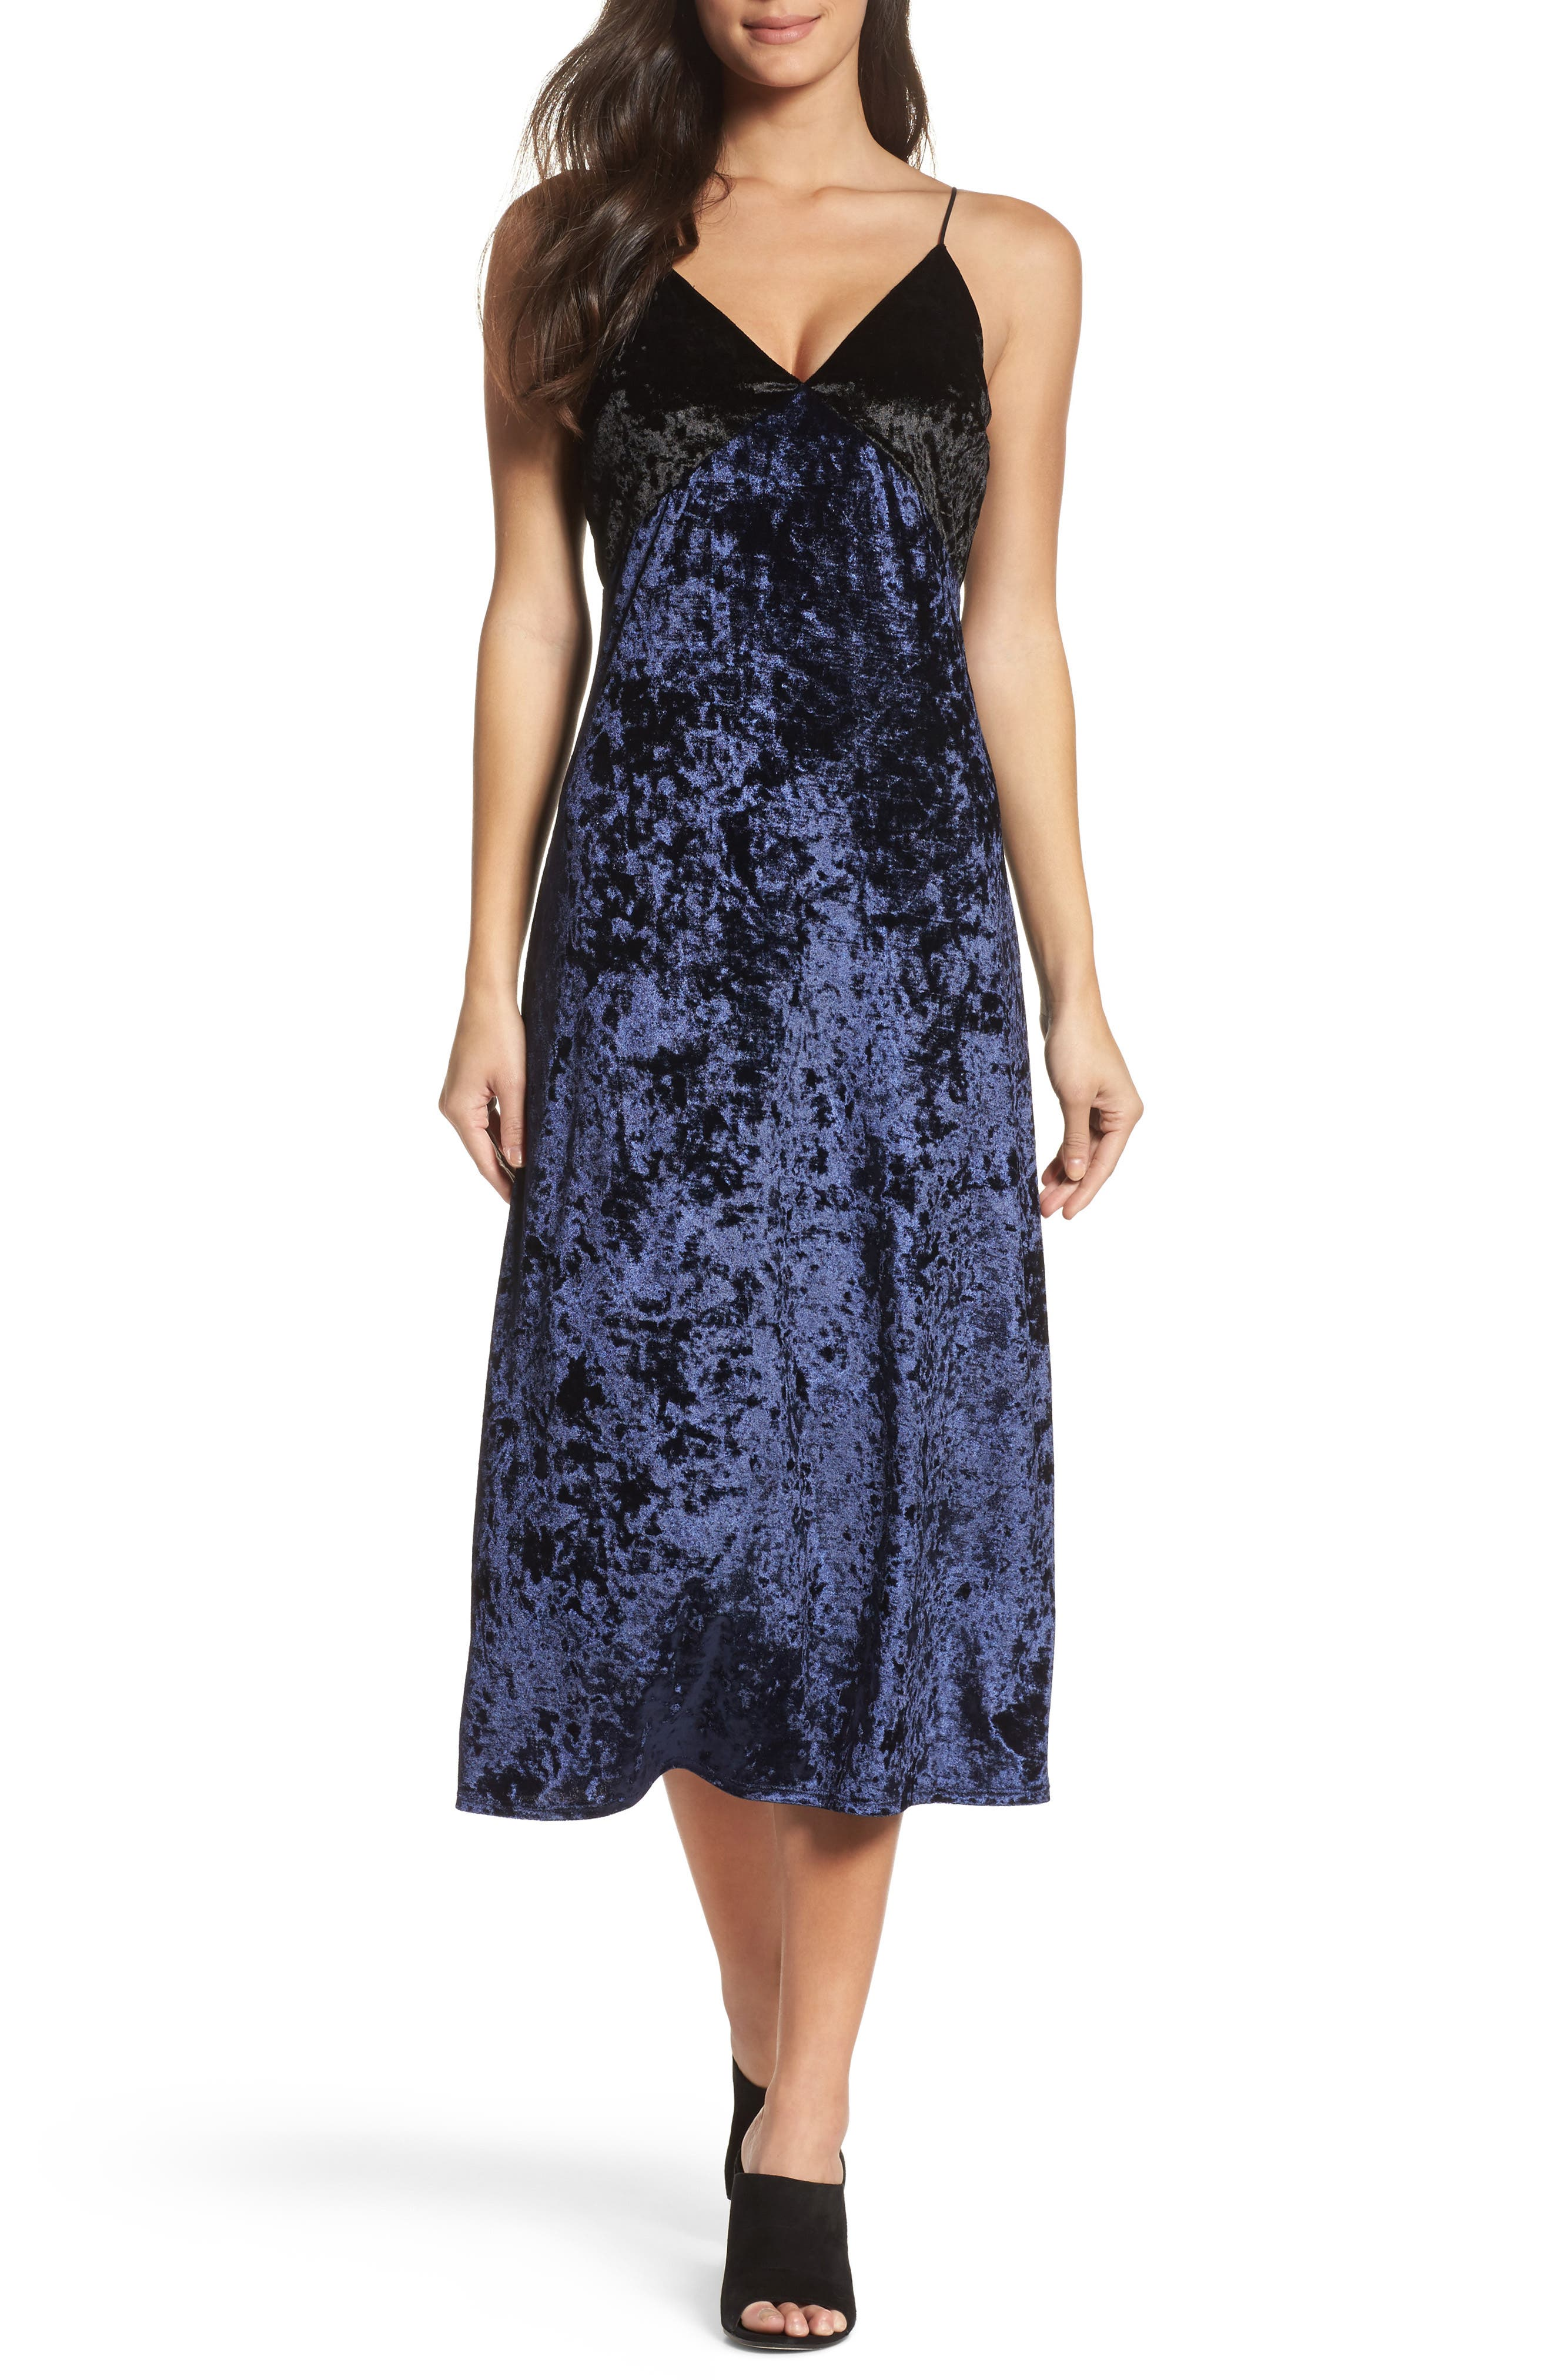 Crushed Velvet Slipdress,                             Main thumbnail 1, color,                             Navy/ Black